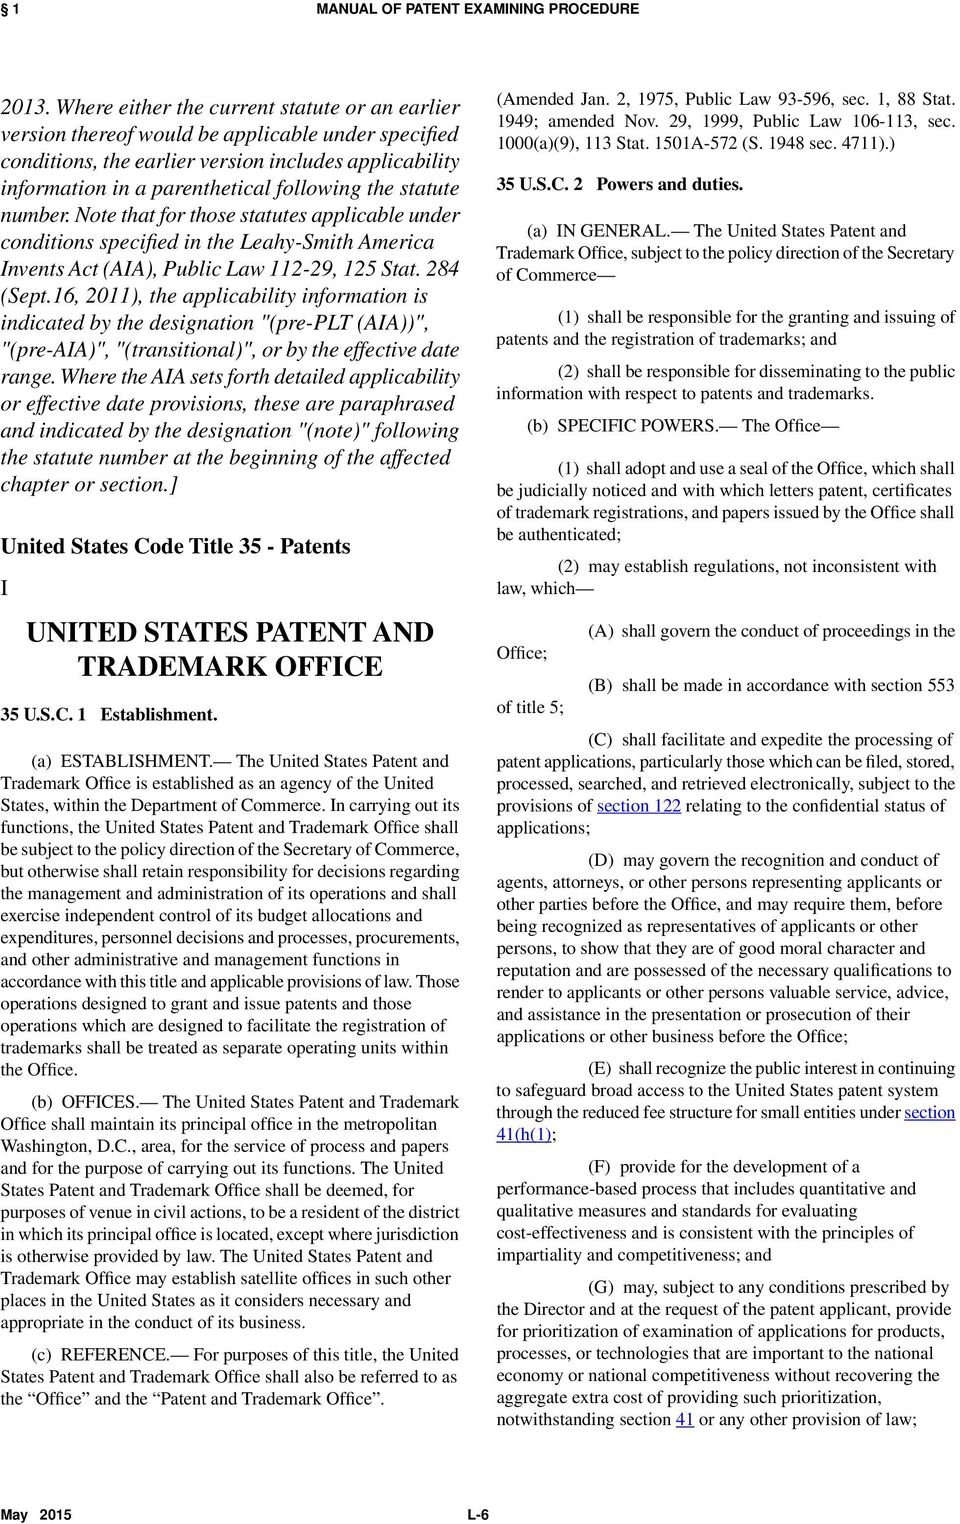 statute number. Note that for those statutes applicable under conditions specified in the Leahy-Smith America Invents Act (AIA), Public Law 112-29, 125 Stat. 284 (Sept.